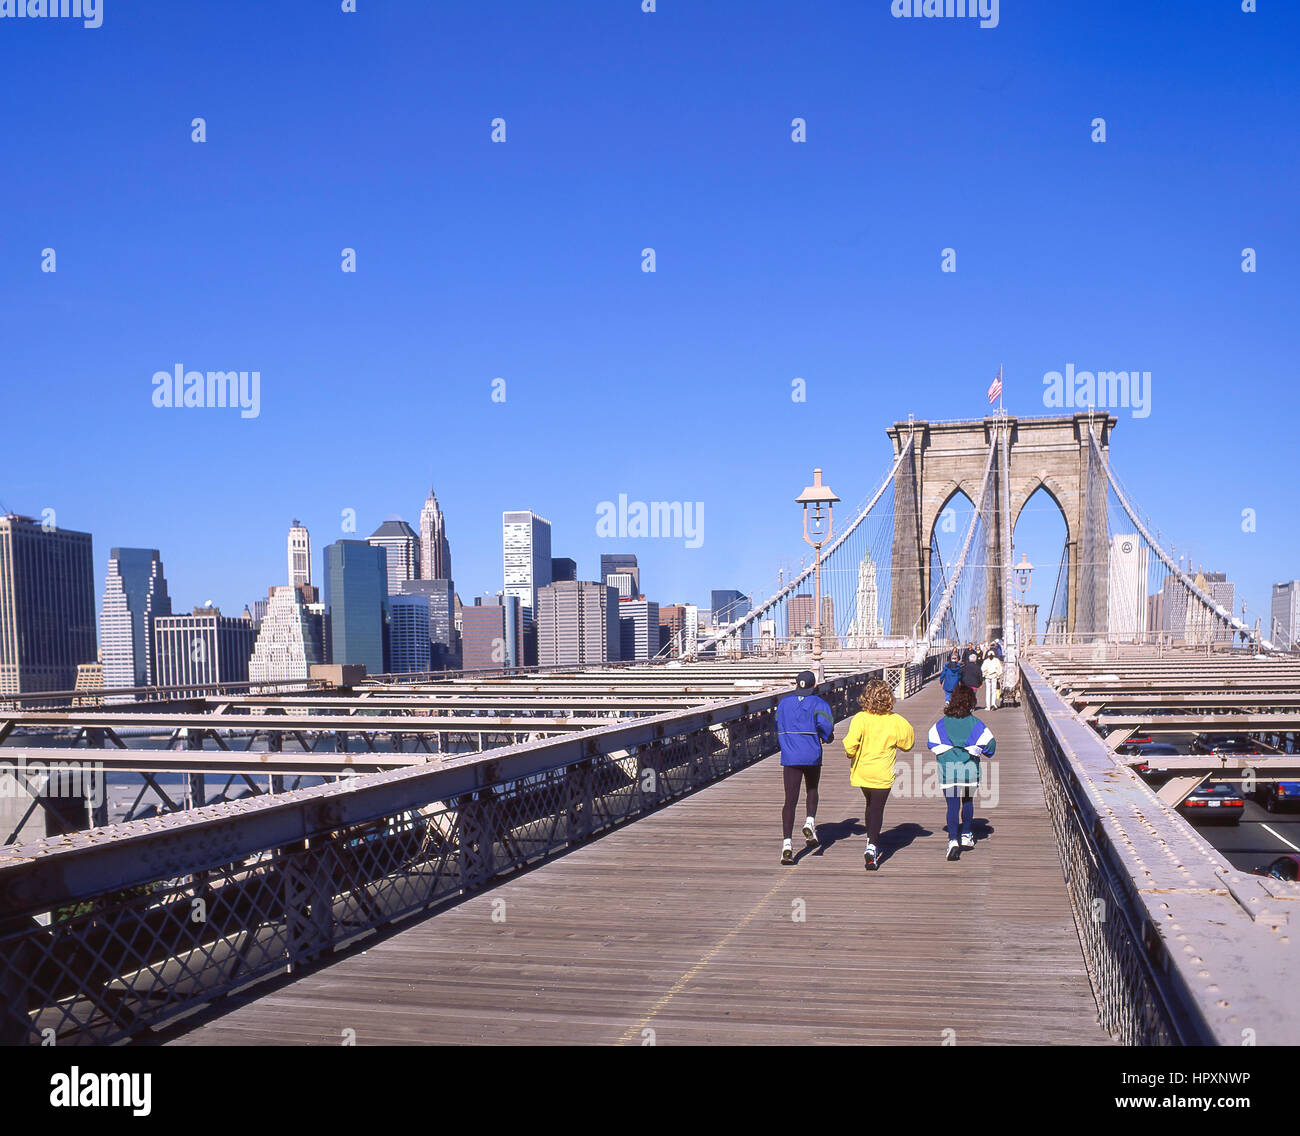 Pedestrian walkway over Brooklyn Bridge, Manhattan, New York, New York State, United States of America - Stock Image